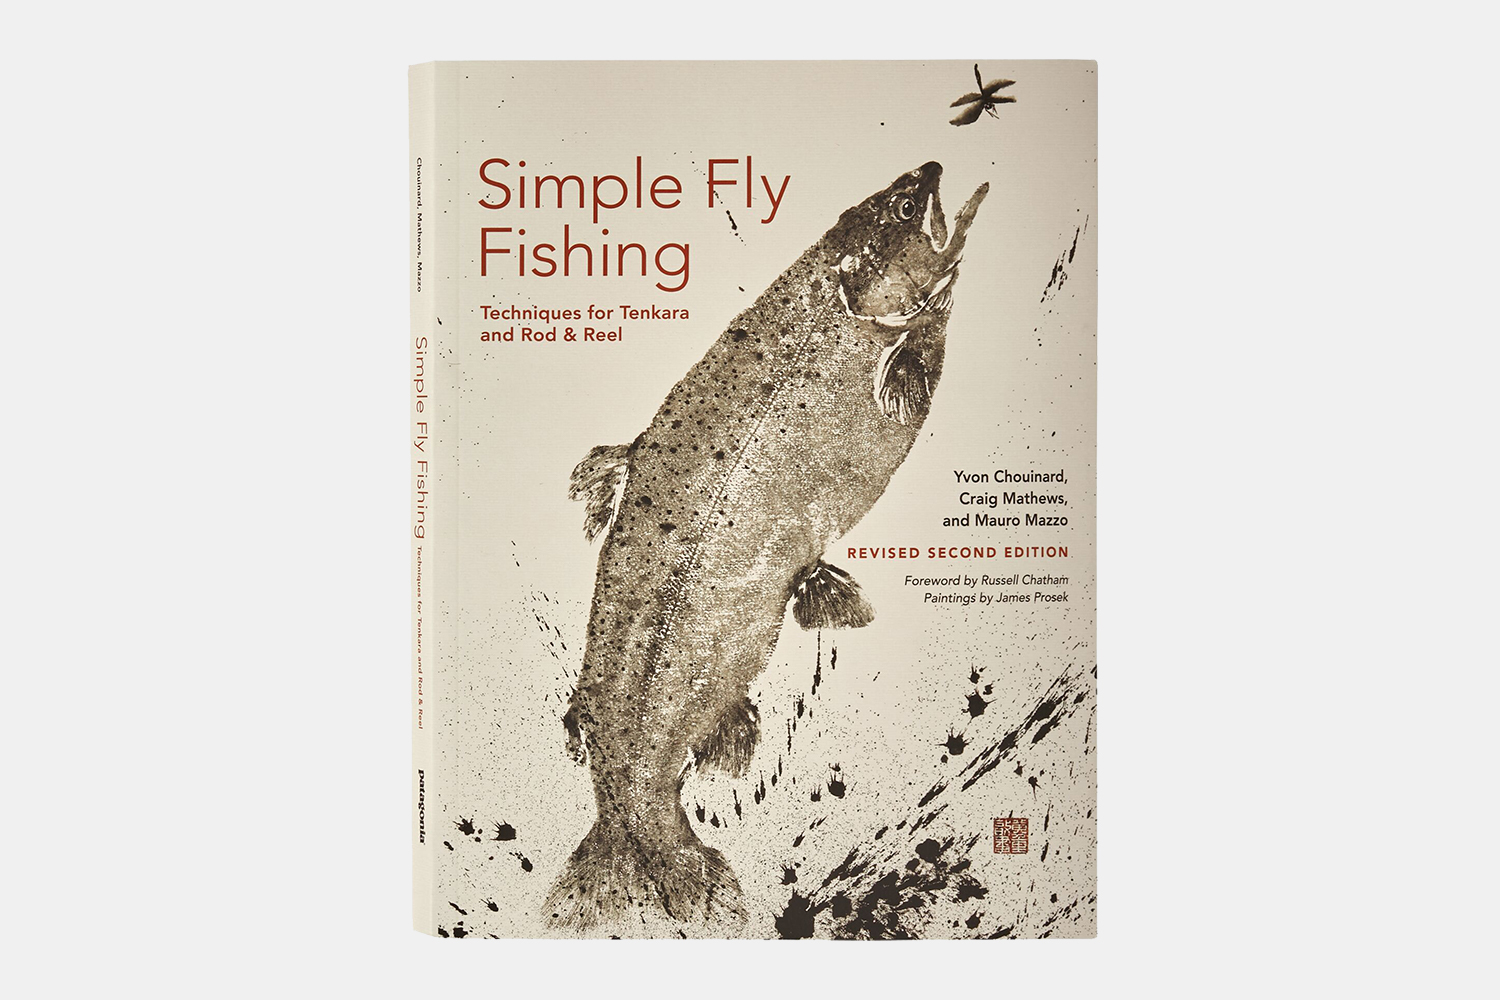 Simple Fly Fishing Revised Second Edition Patagonia Book